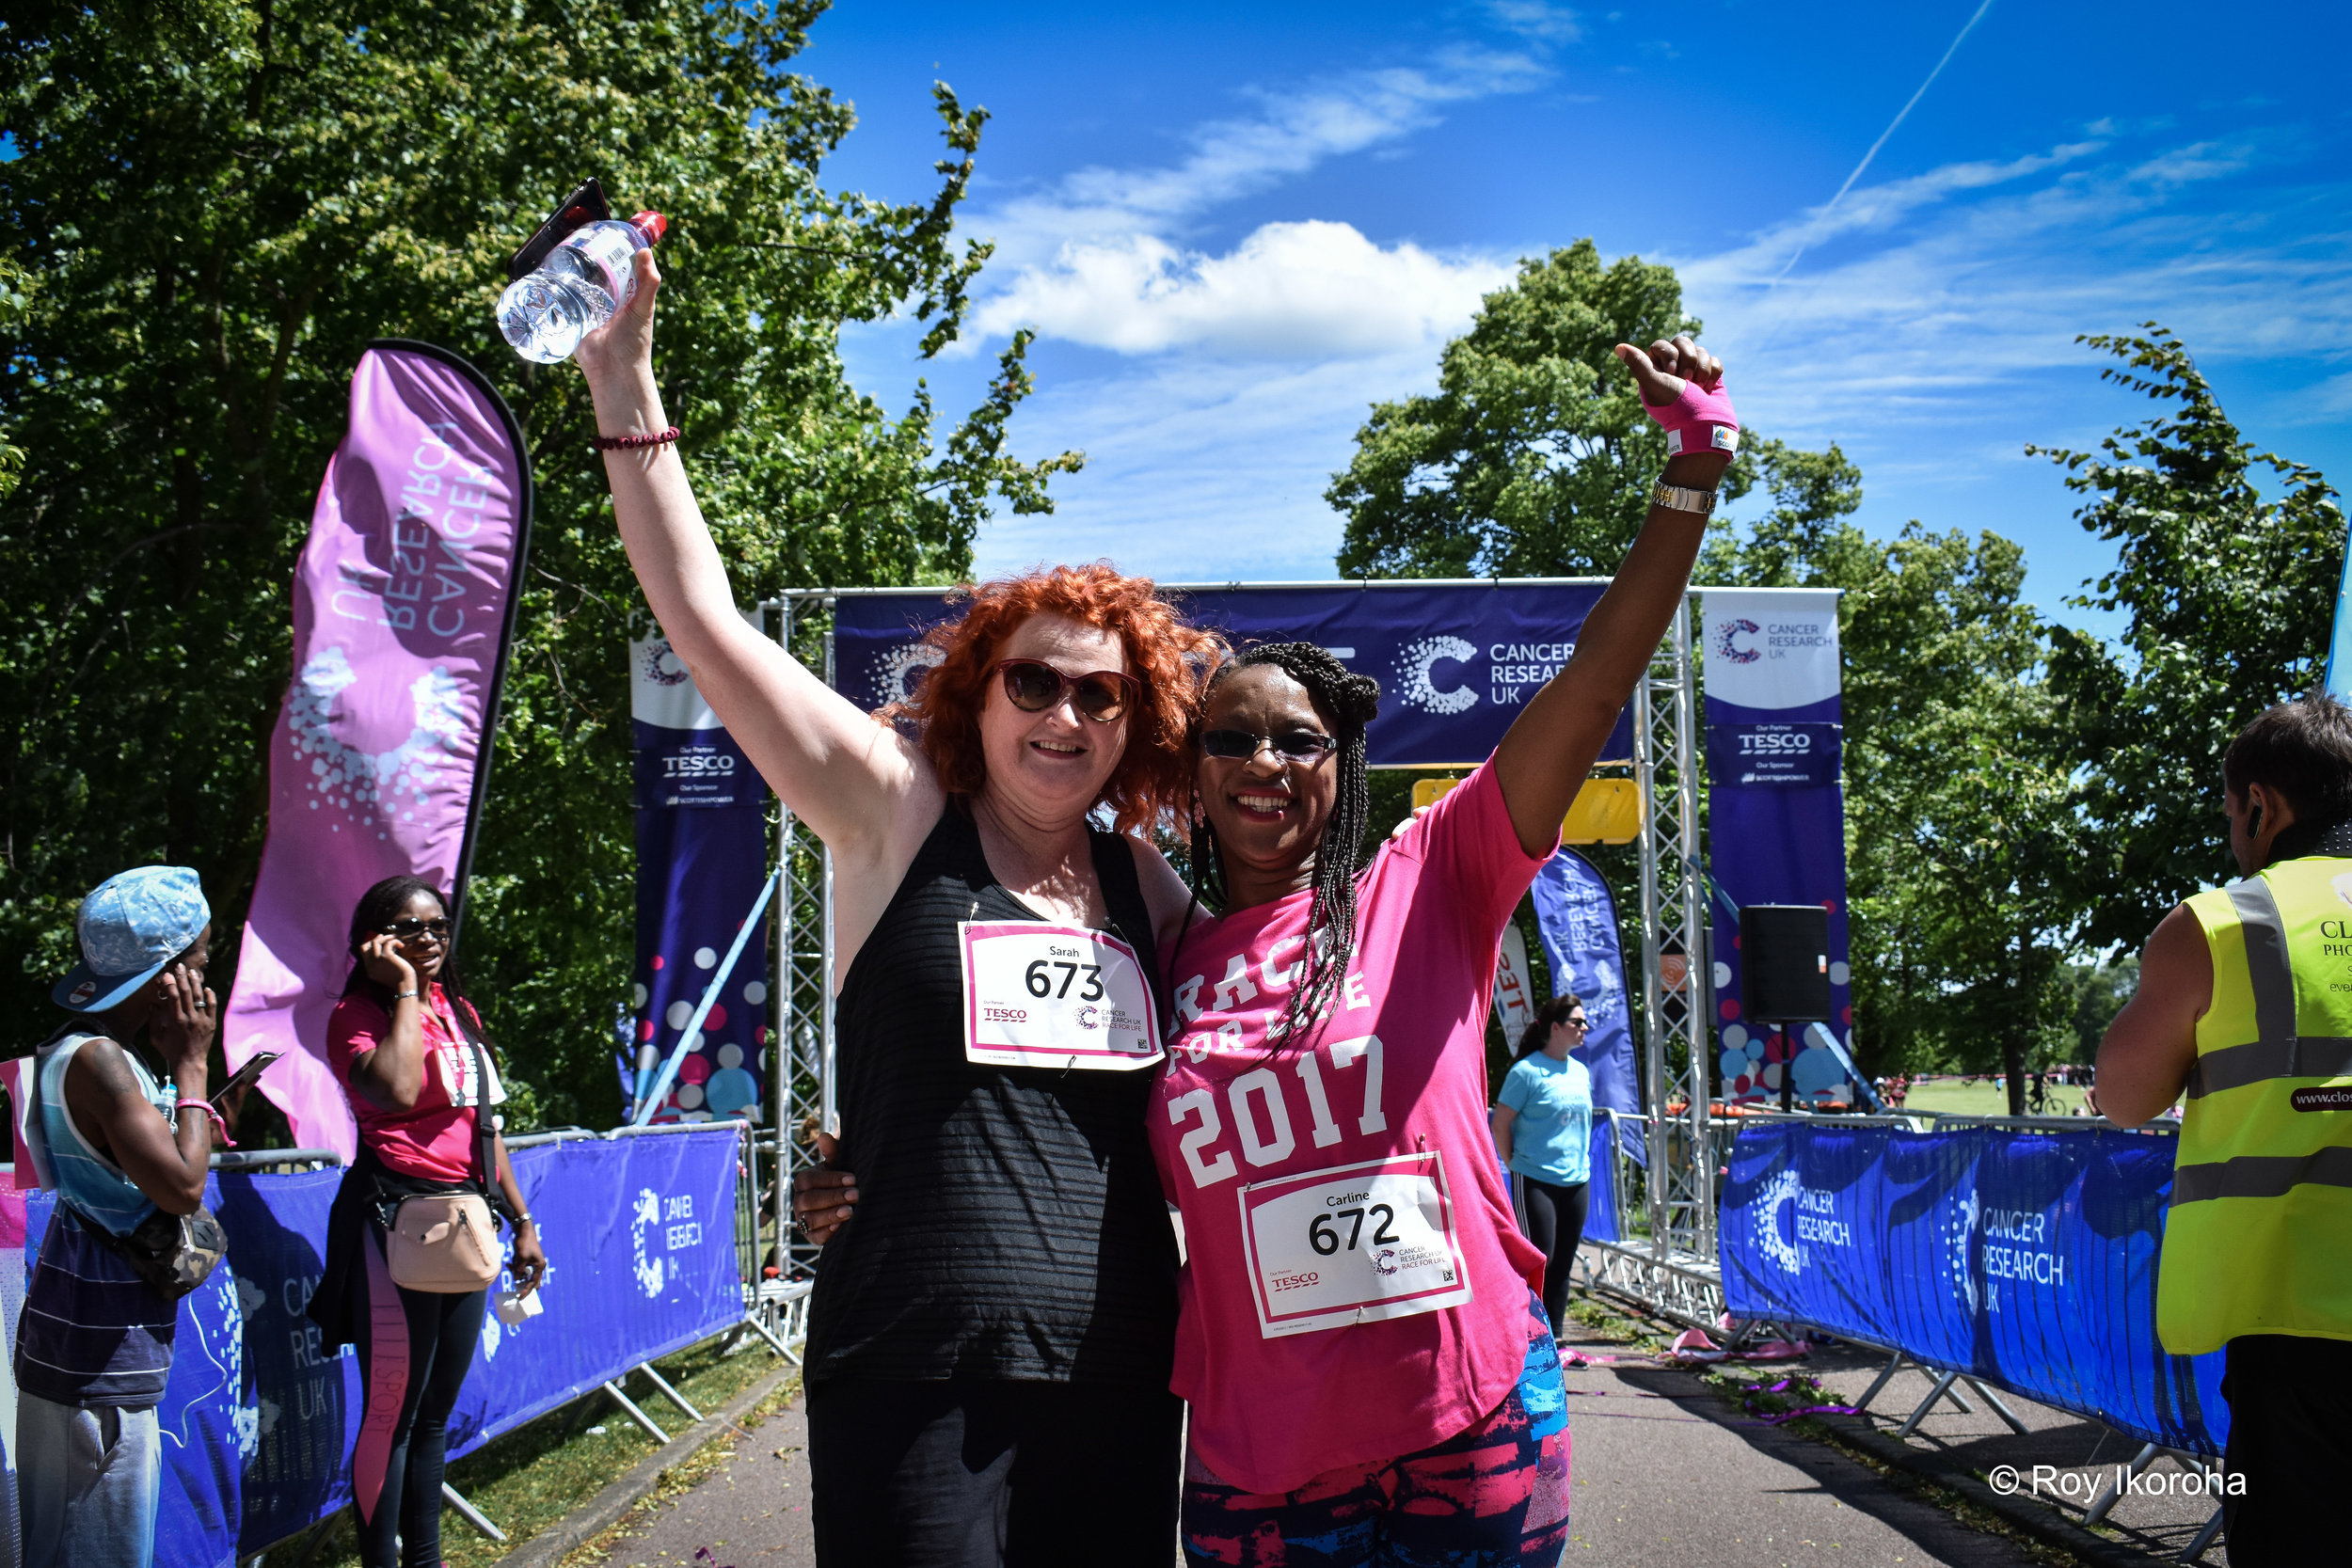 My Mum with Sarah crossing the finish line!